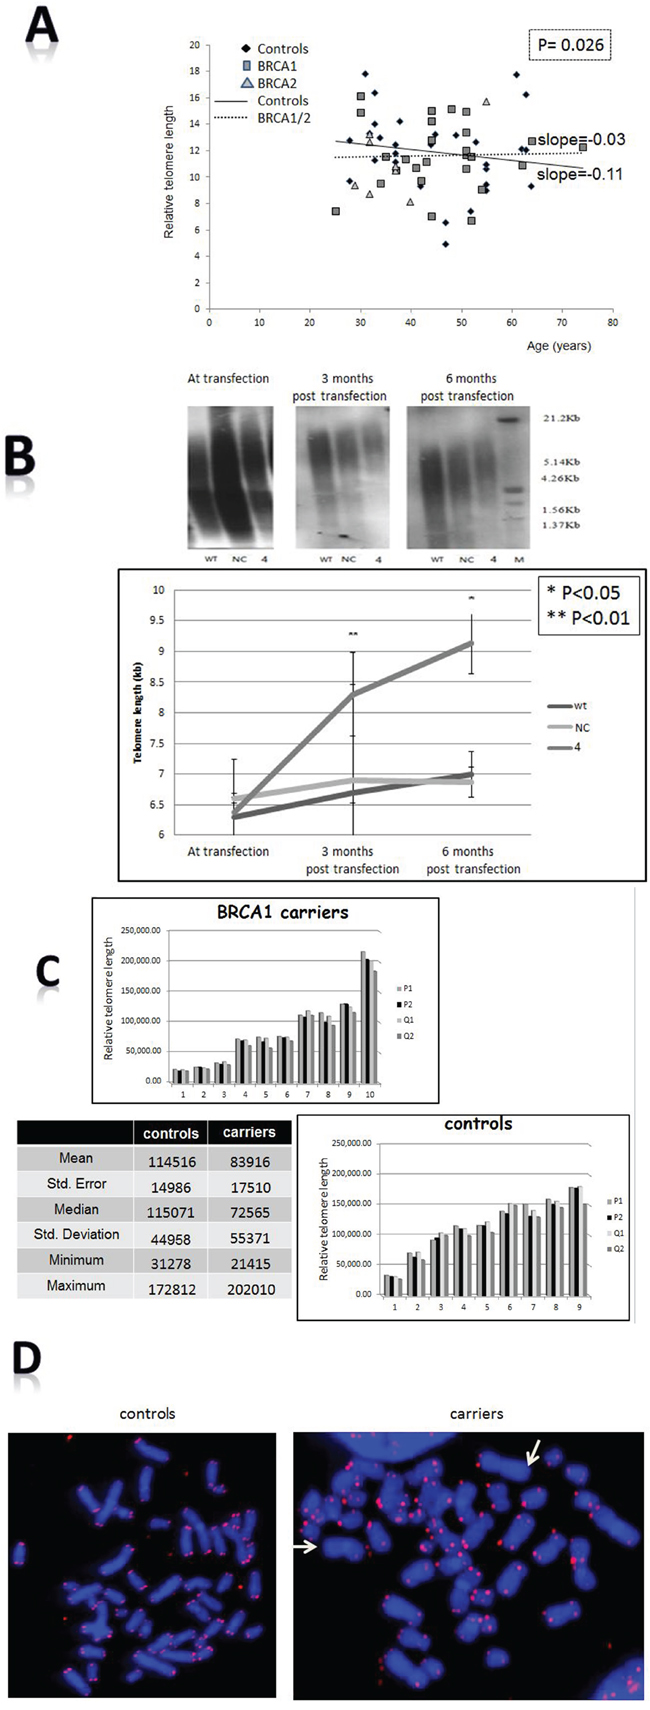 Effects of BRCA mutation on telomere length characteristics.